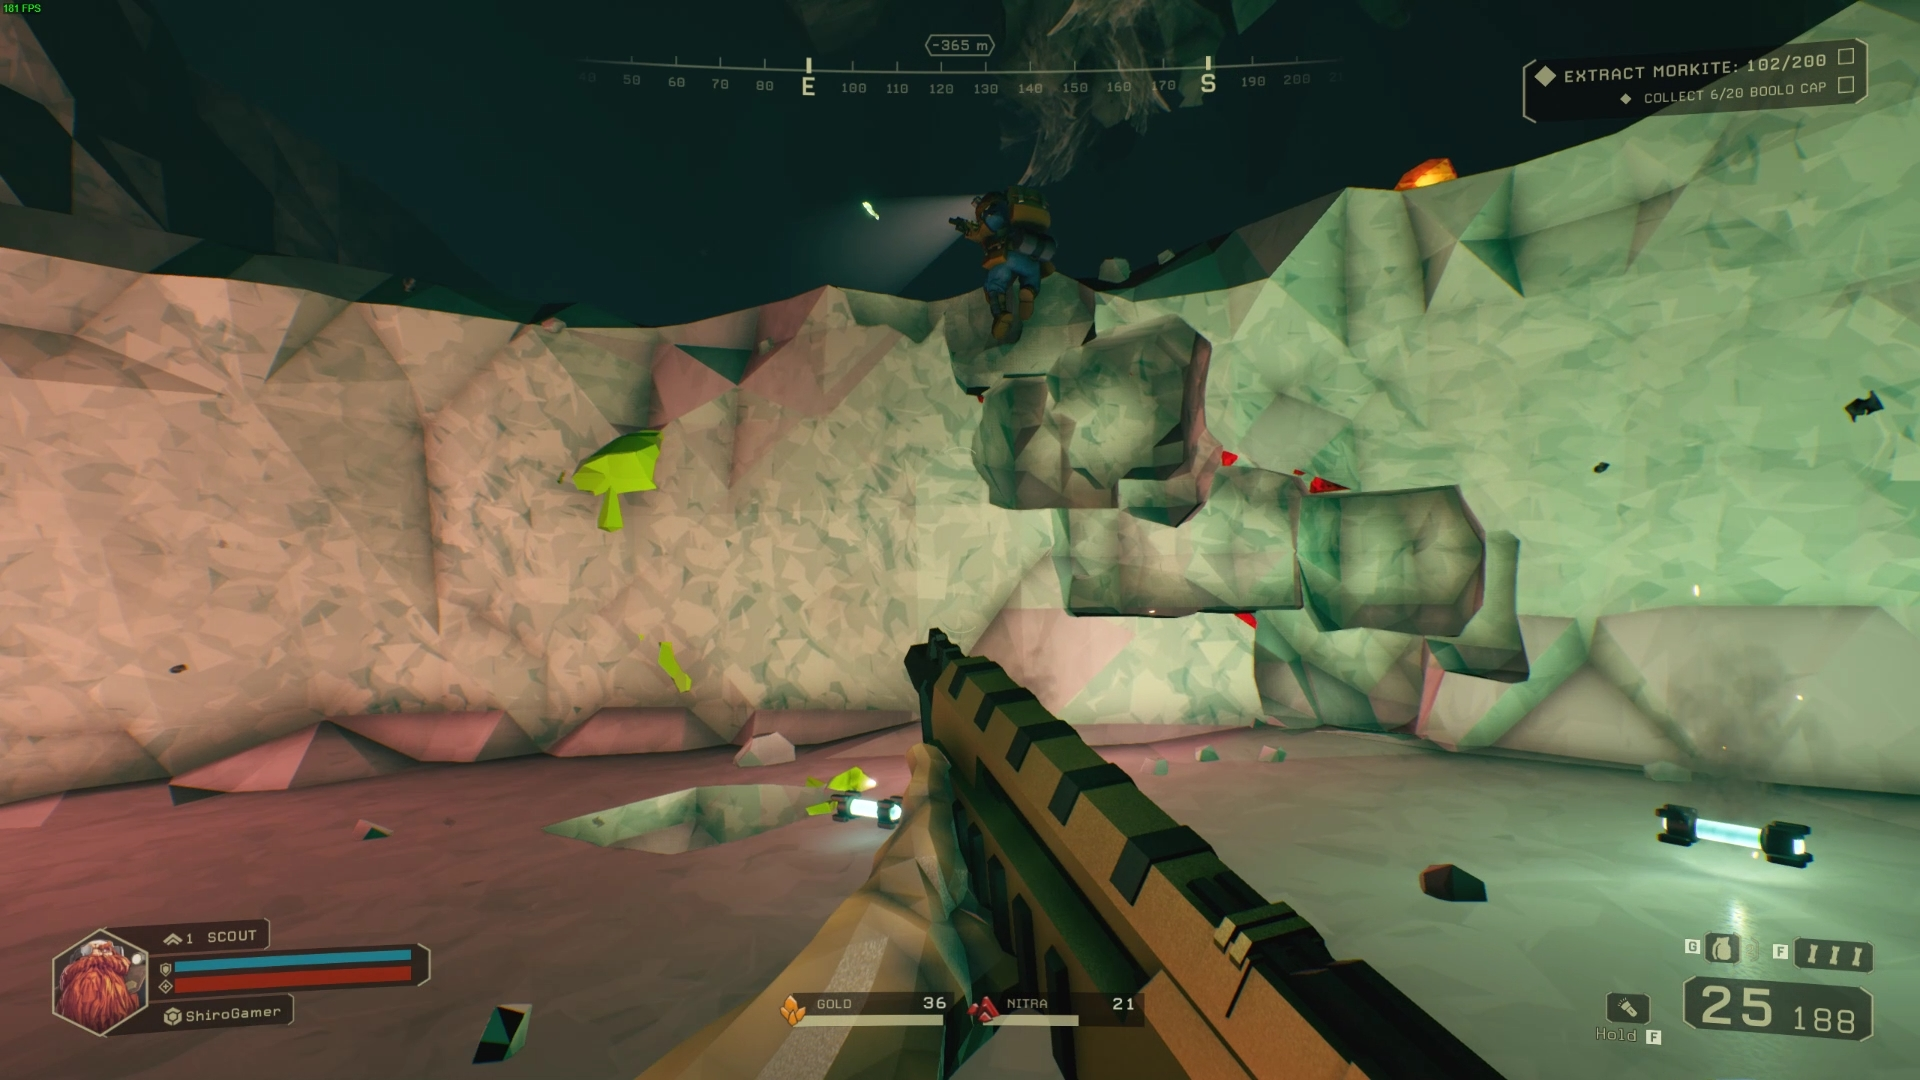 deep rock galactic is a recent tackle co-op shooters with tangible